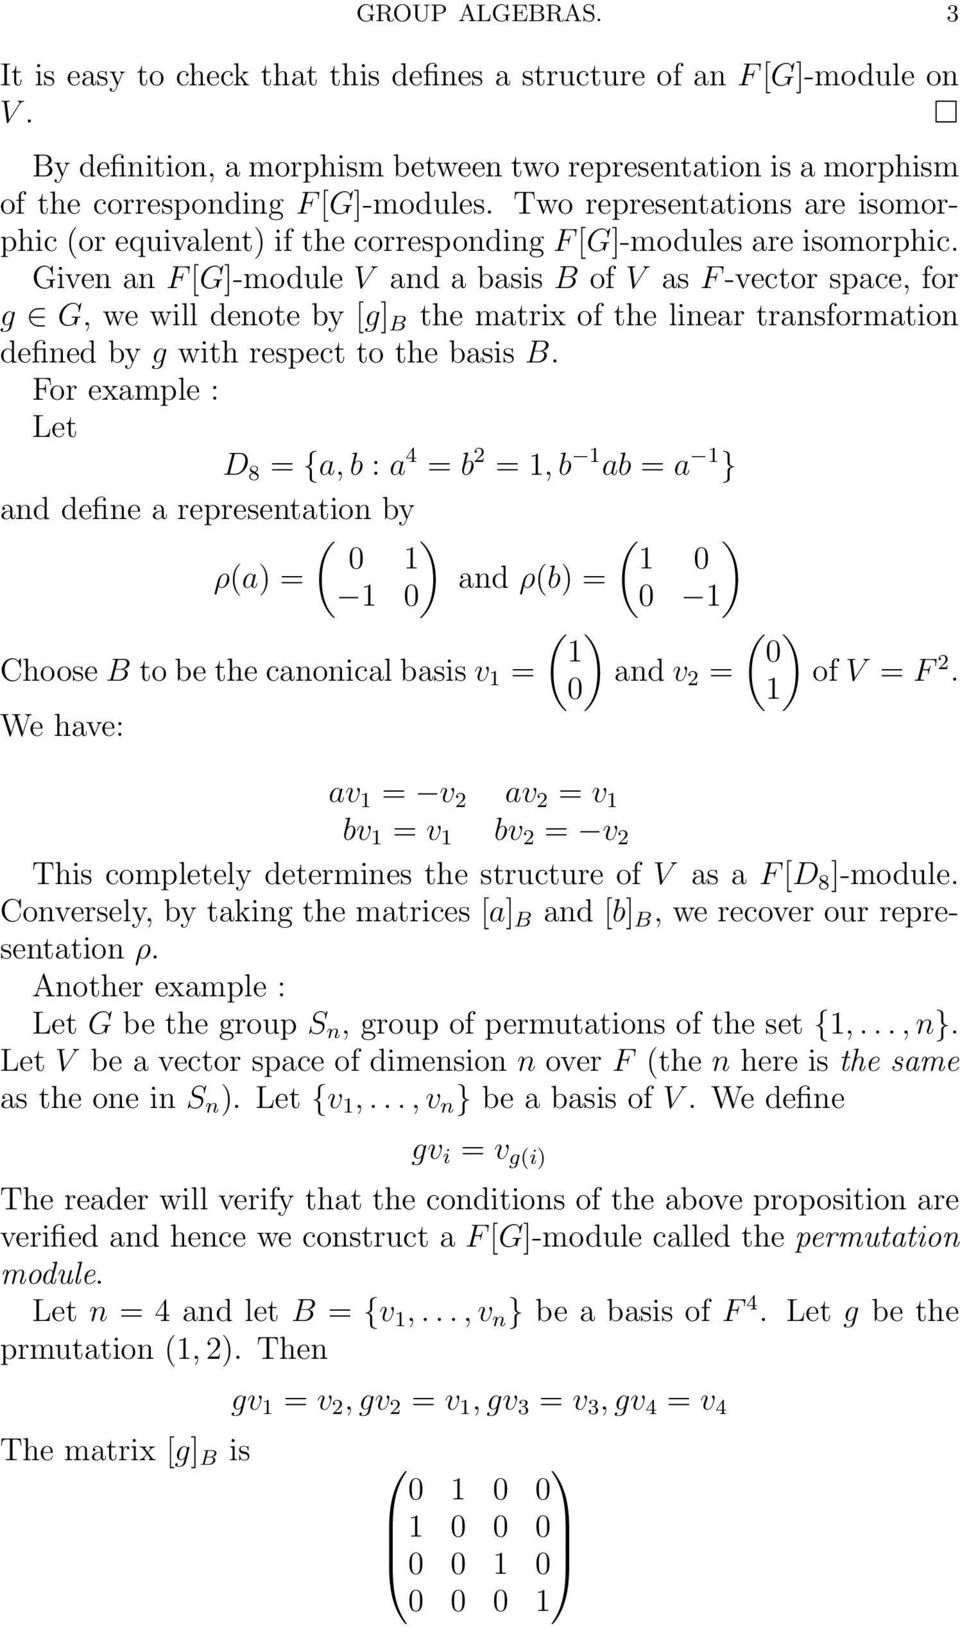 Given an F[G]-module V and a basis B of V as F-vector space, for g G, we will denote by [g] B the matrix of the linear transformation defined by g with respect to the basis B.